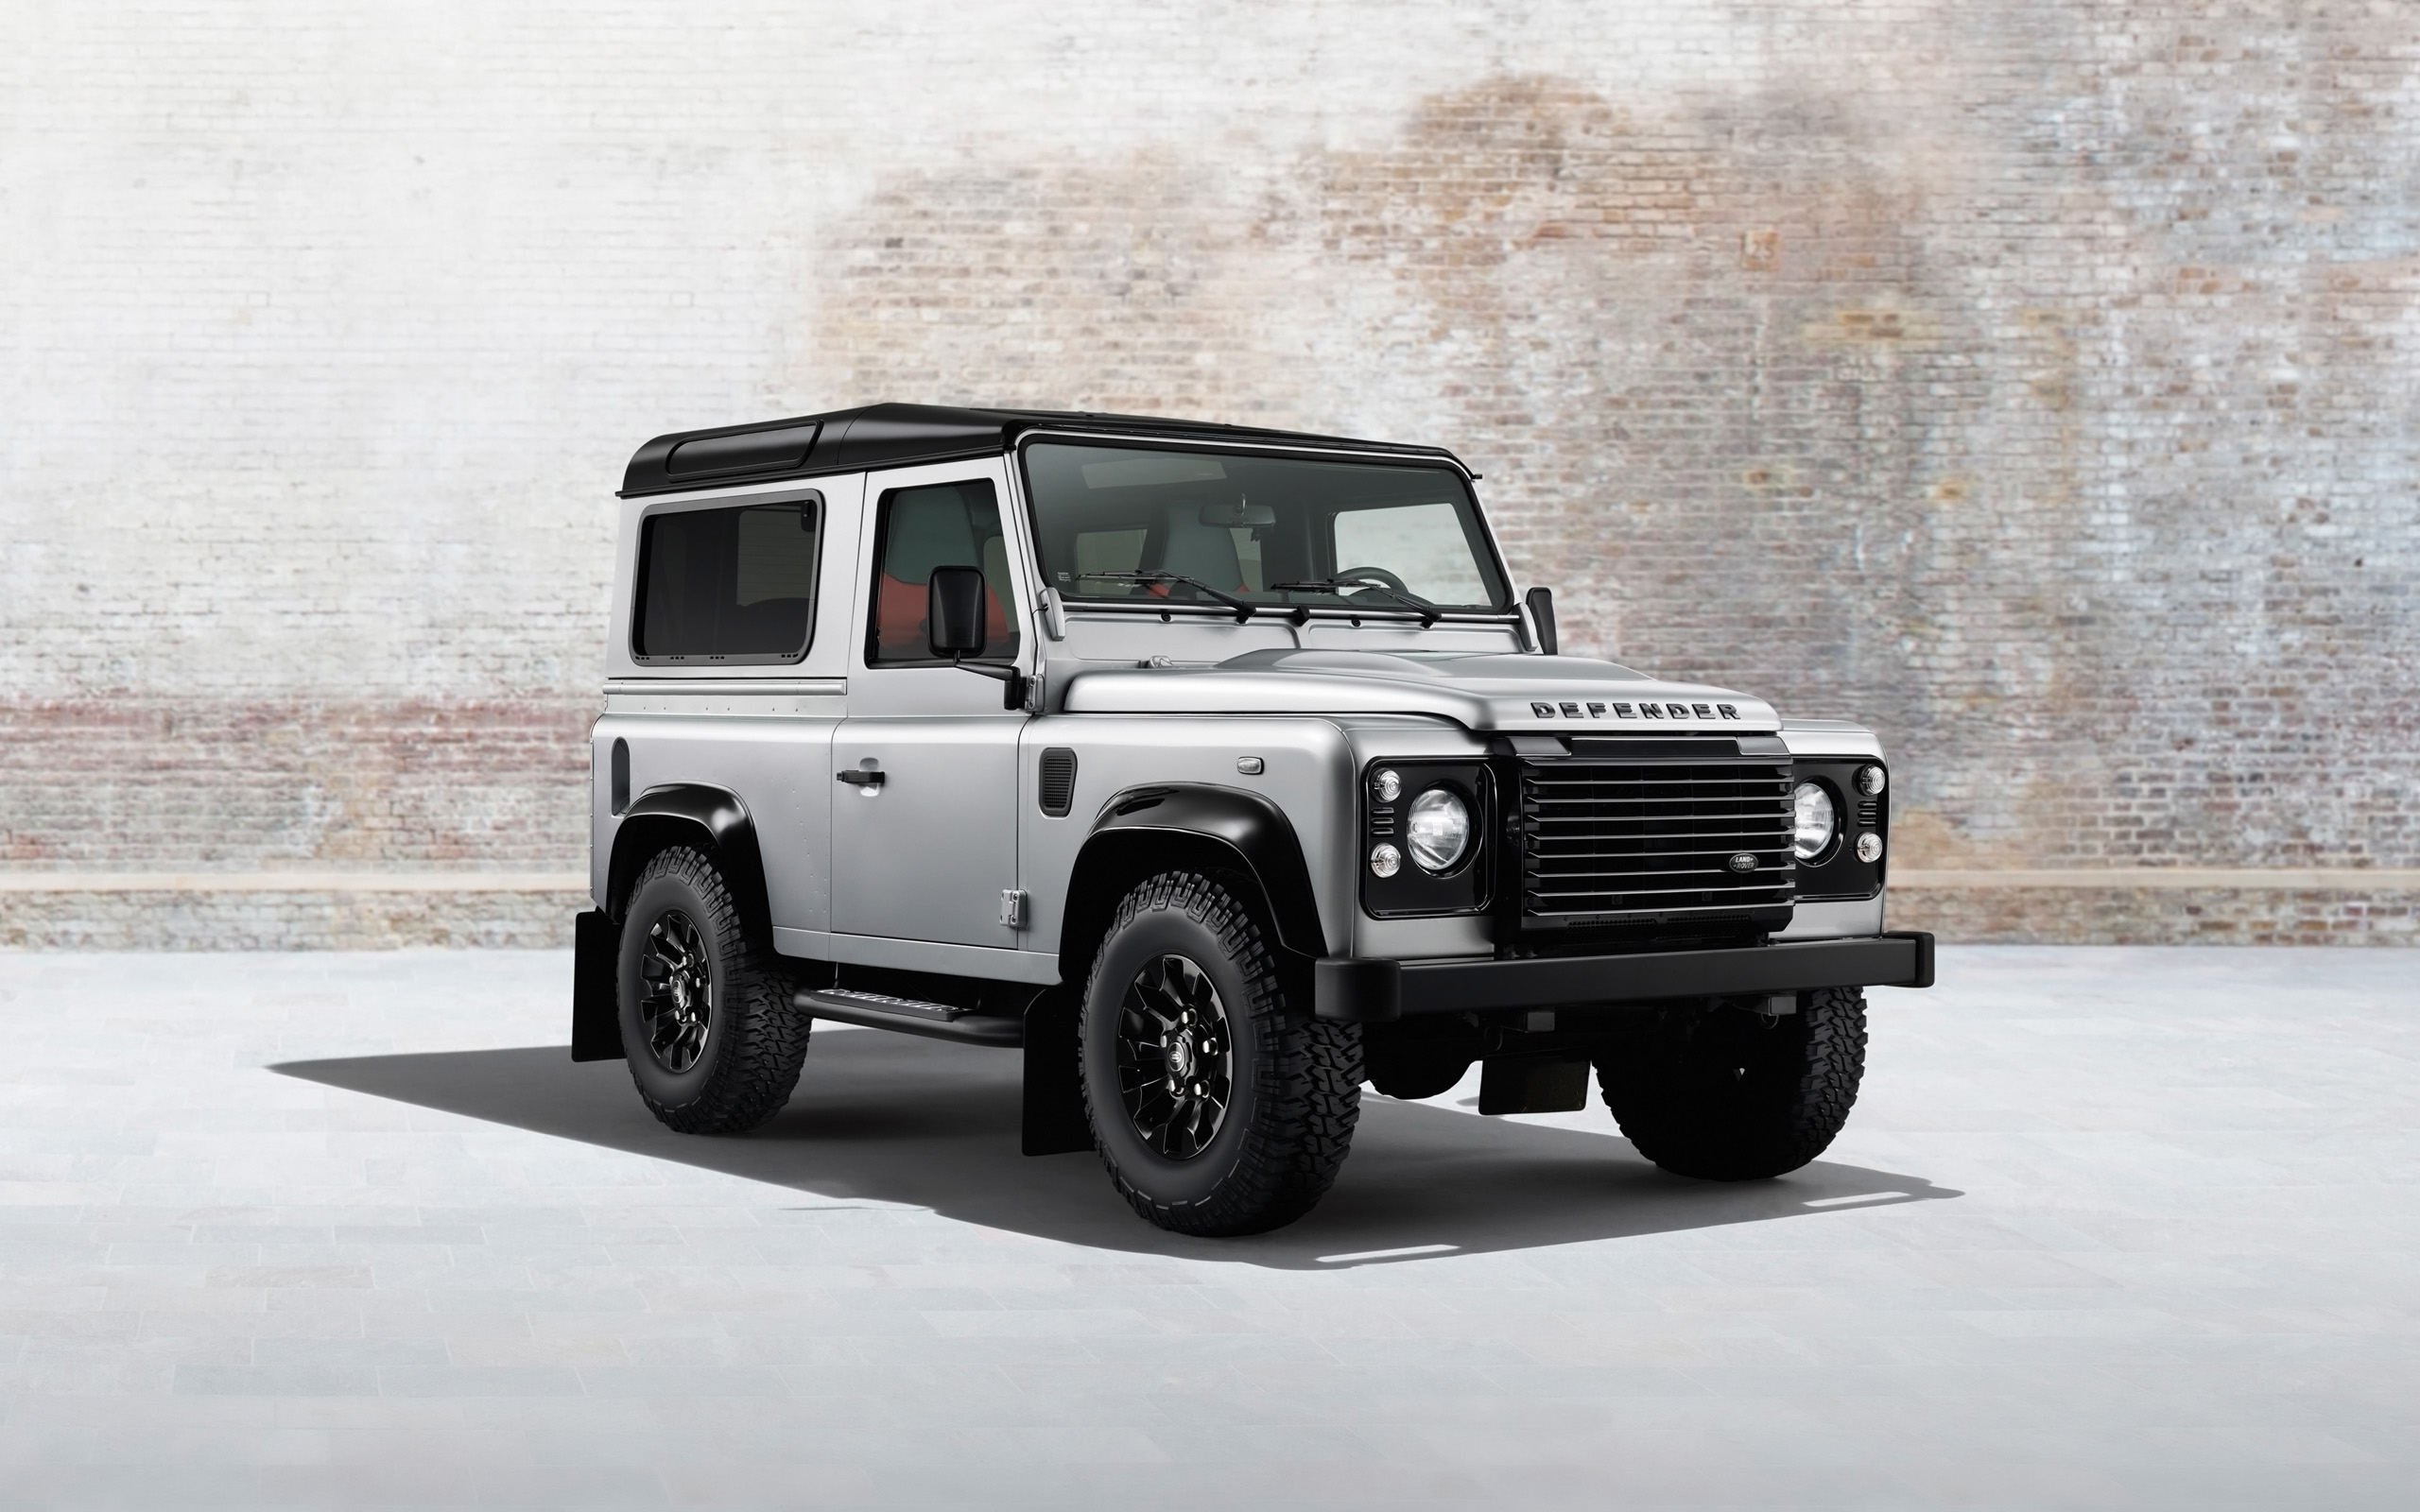 2014 land rover defender wallpaper hd car wallpapers id 4158. Black Bedroom Furniture Sets. Home Design Ideas